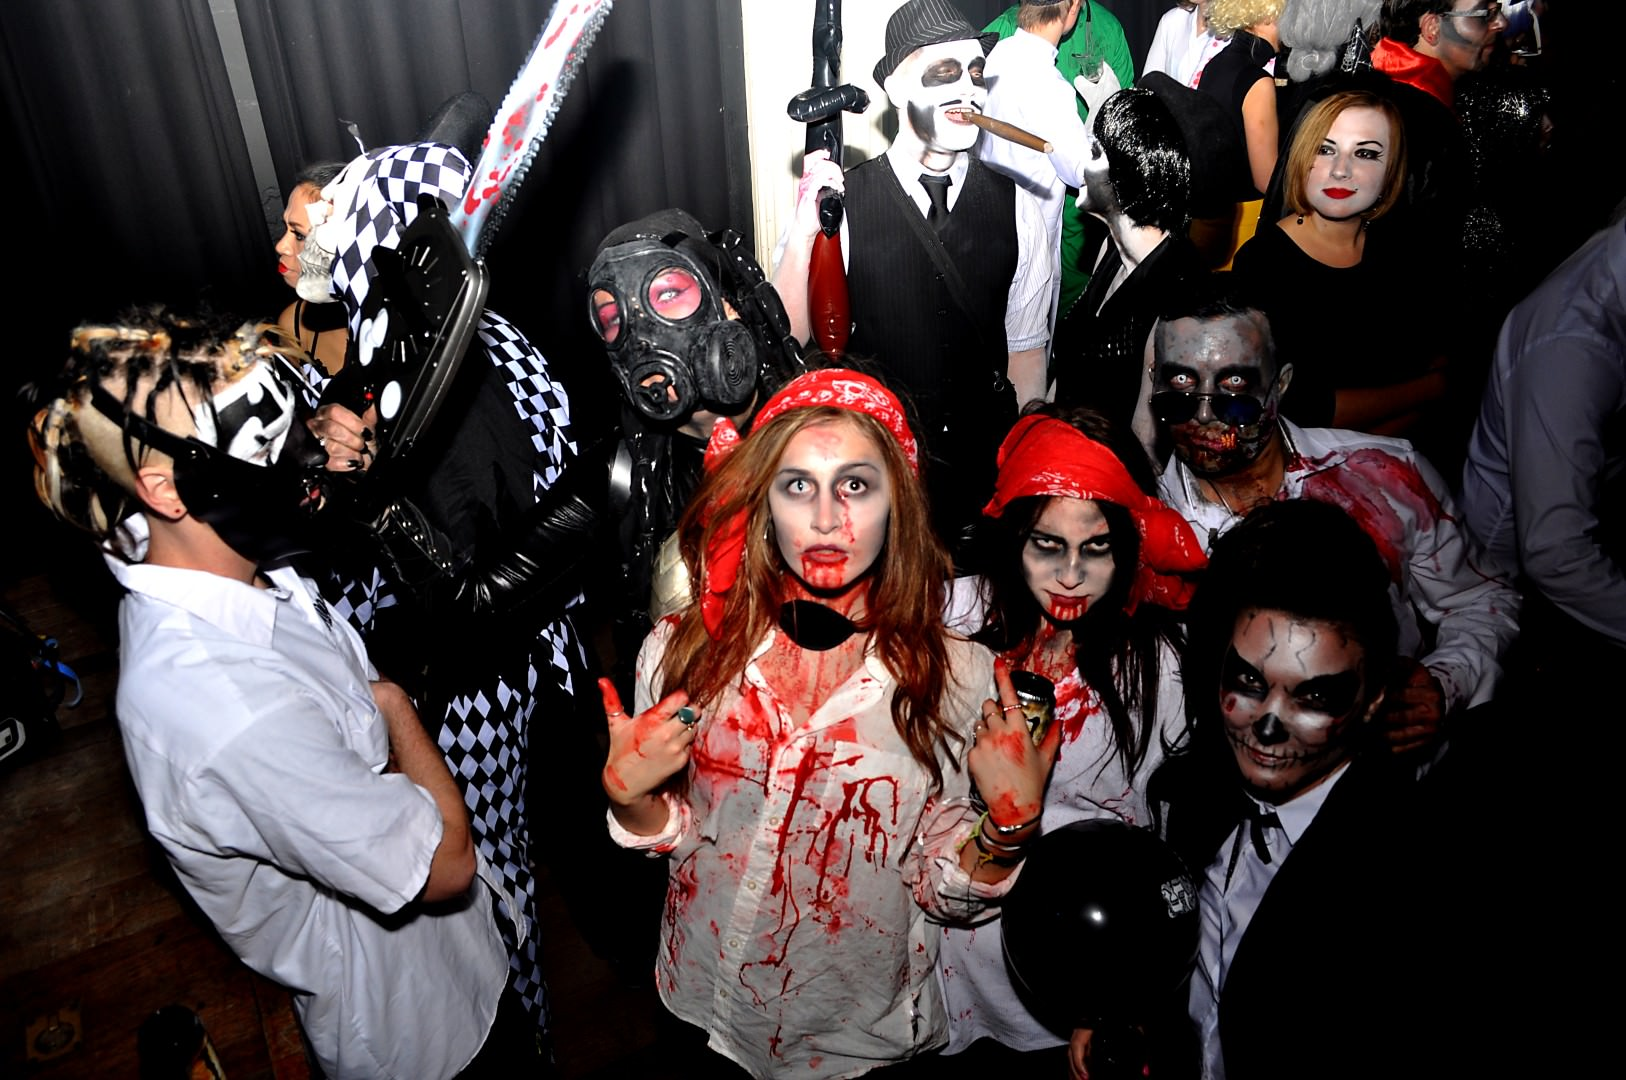 Halloween-at-Odeon-2012-202-Large